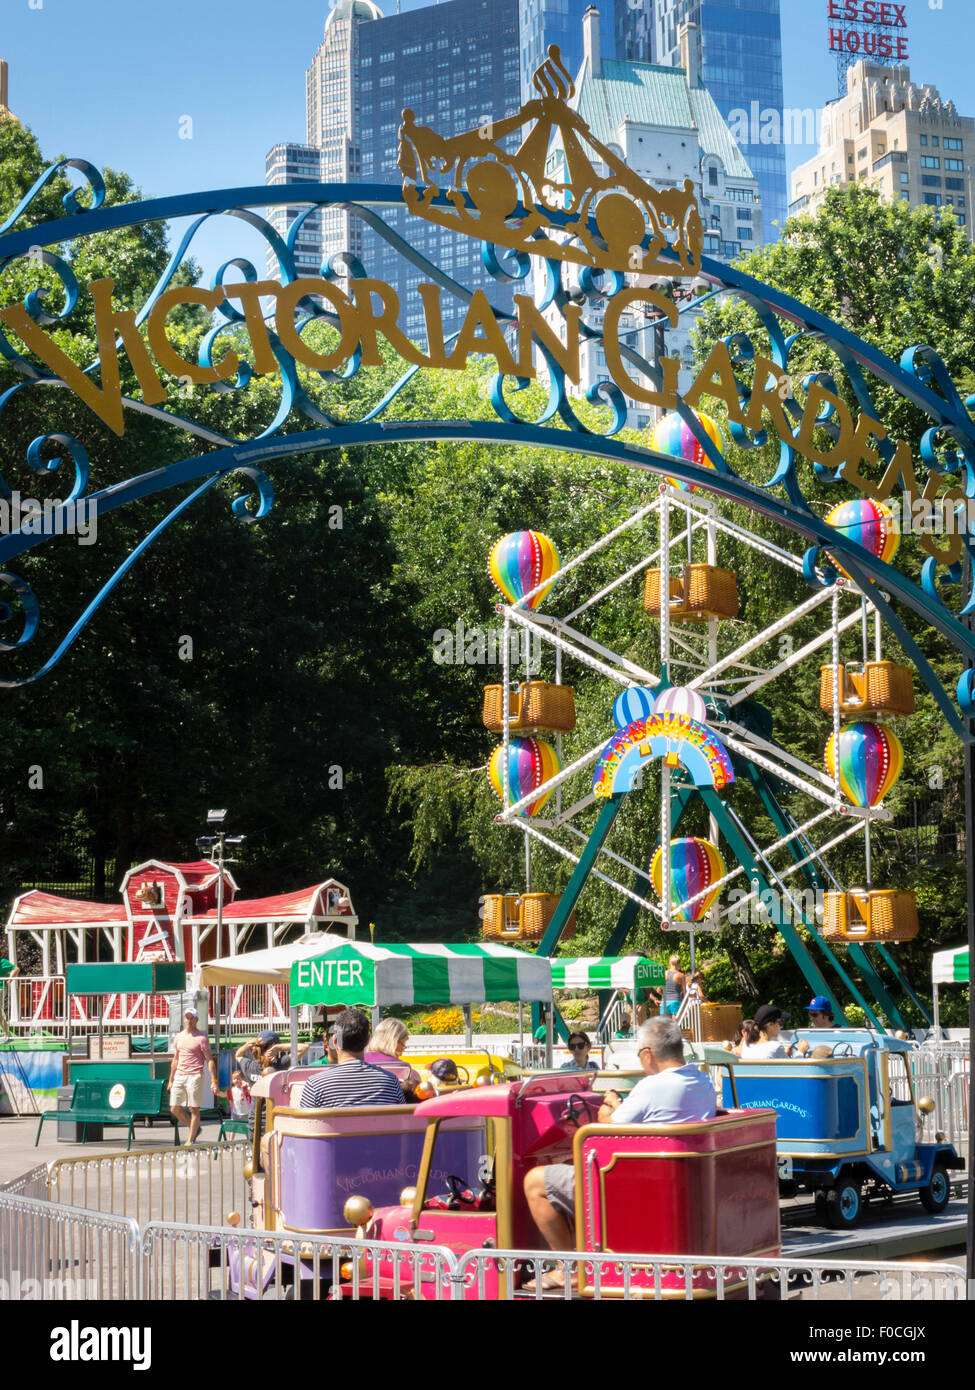 Victorian Gardens Carnival Rides In Central Park With